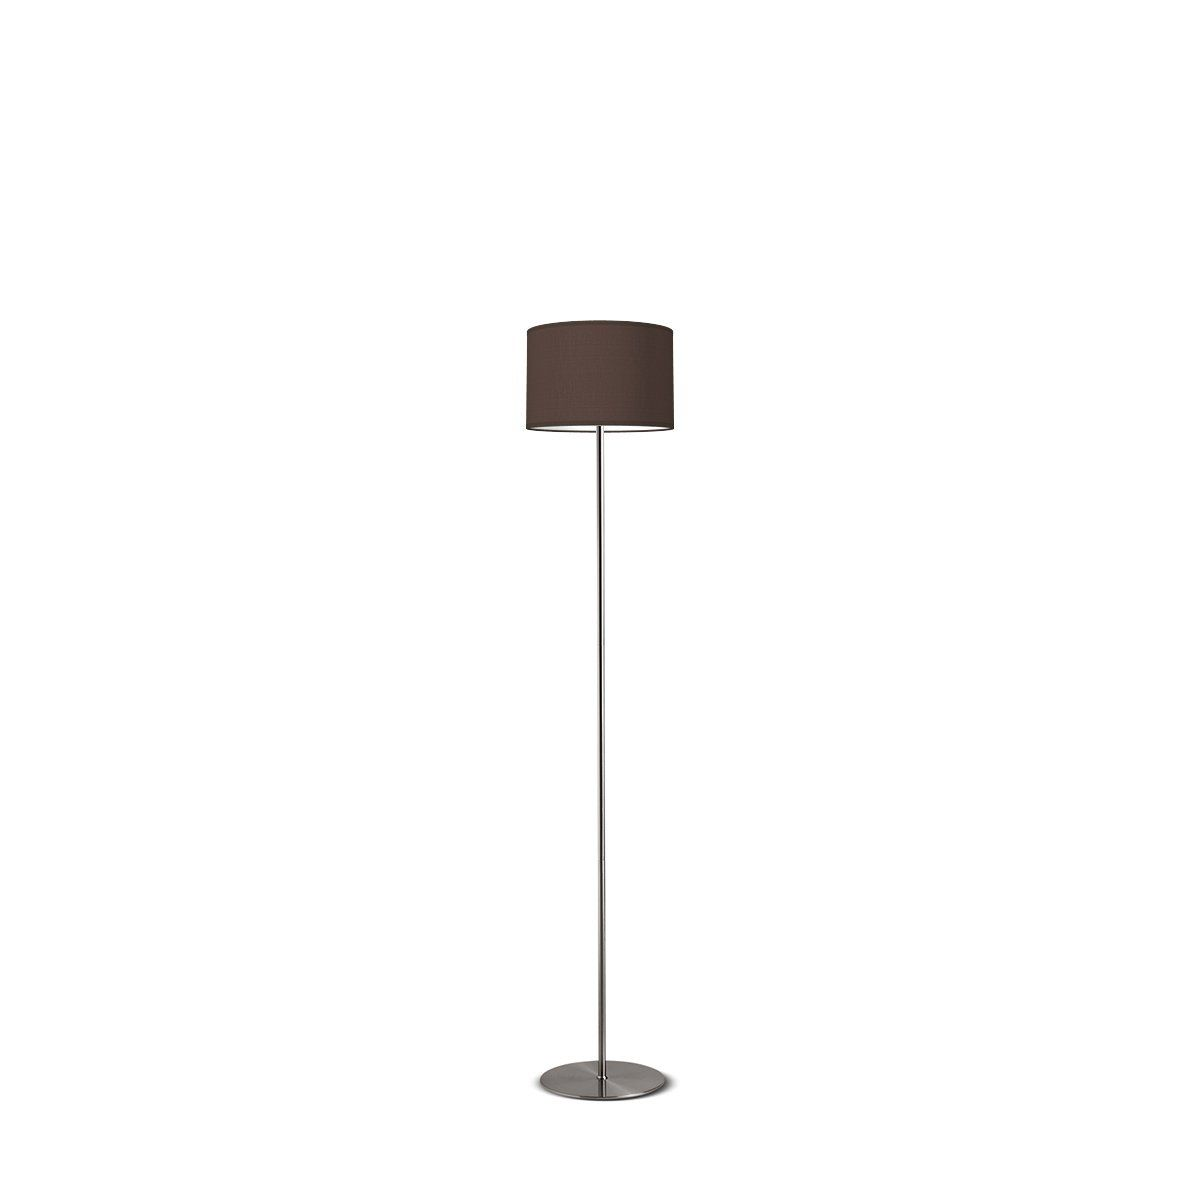 HOME SWEET HOME vloerlamp lift bling Ø 30 cm - Chocolate